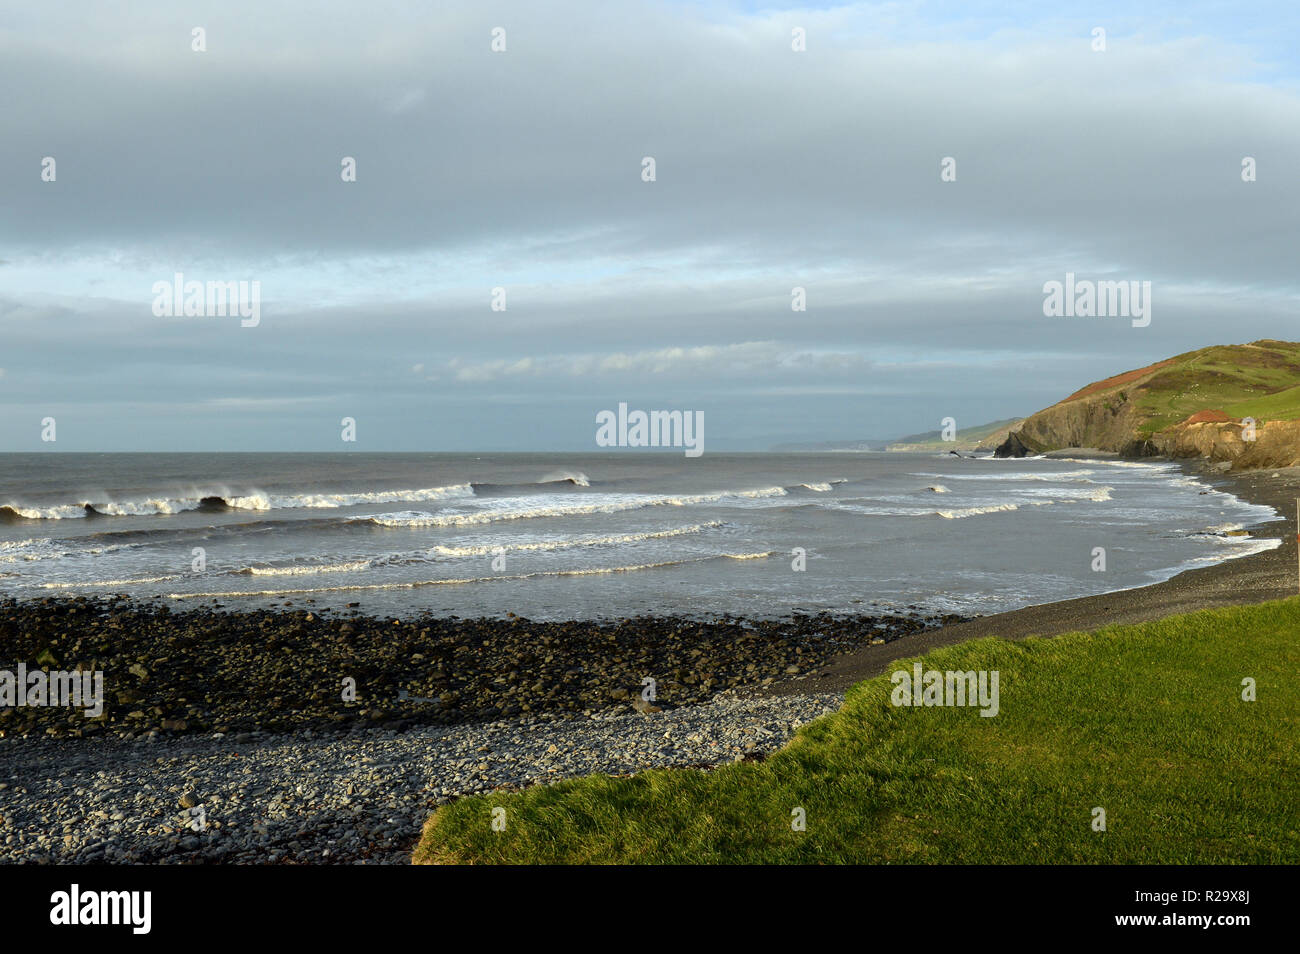 Llanrhystud beach in late evening light looking north at the coast to Aberystwyth over the surf and pebble shoreline beach - Stock Image